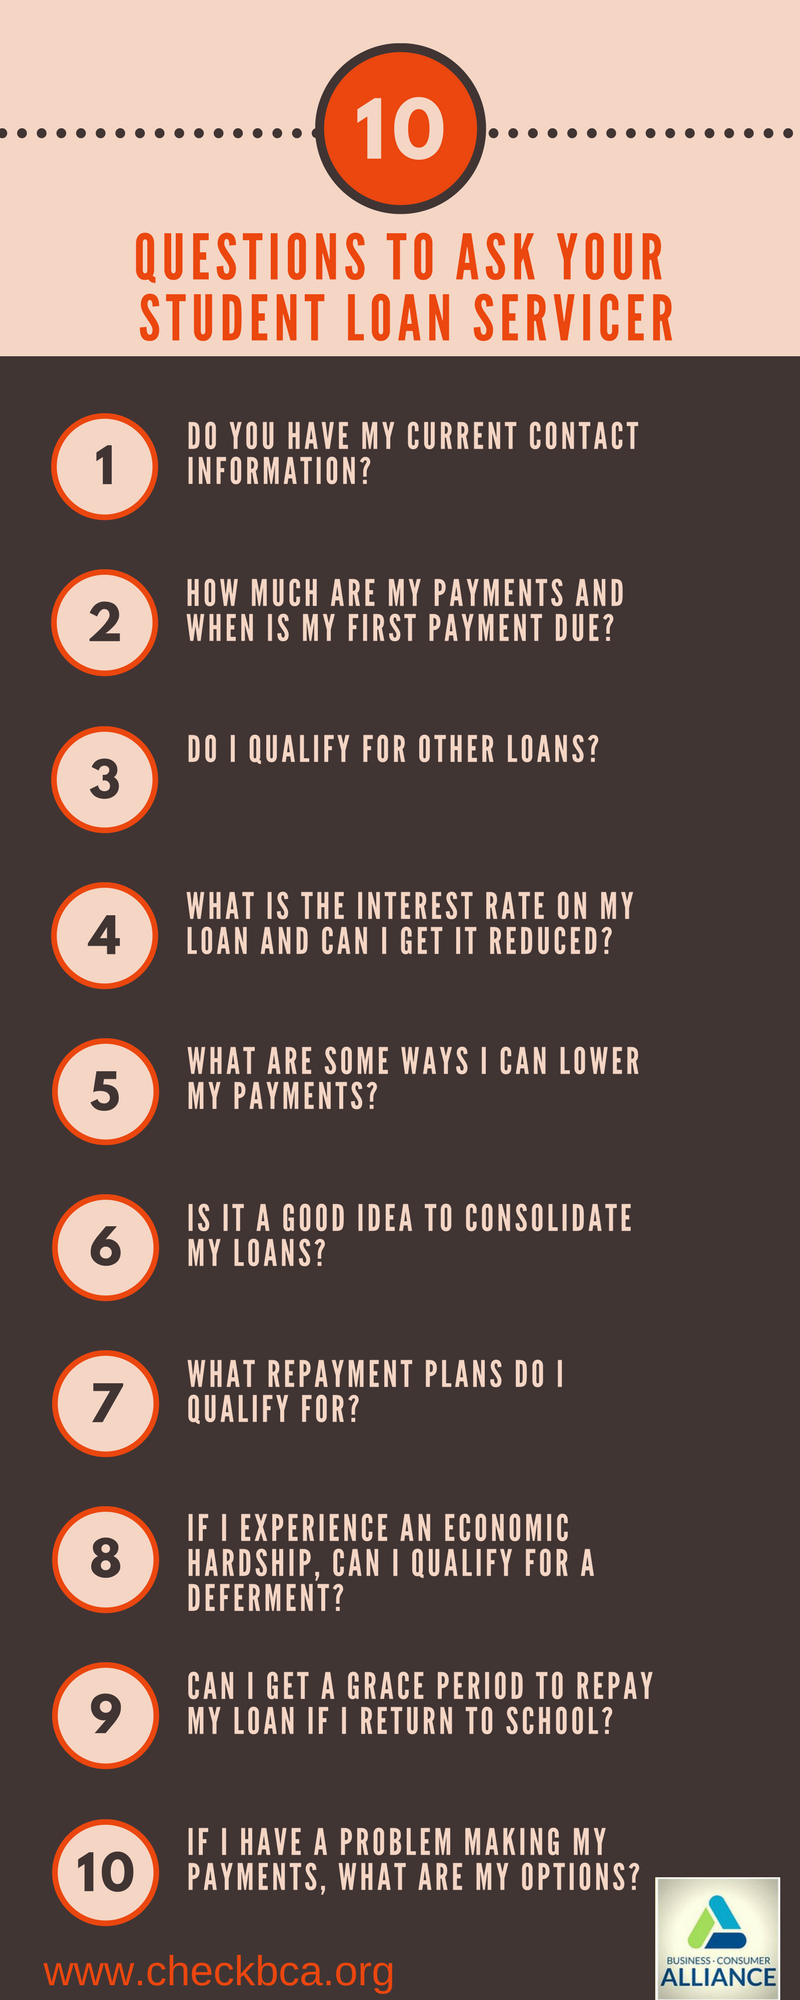 10 Questions to Ask Your Student Loan Servicer